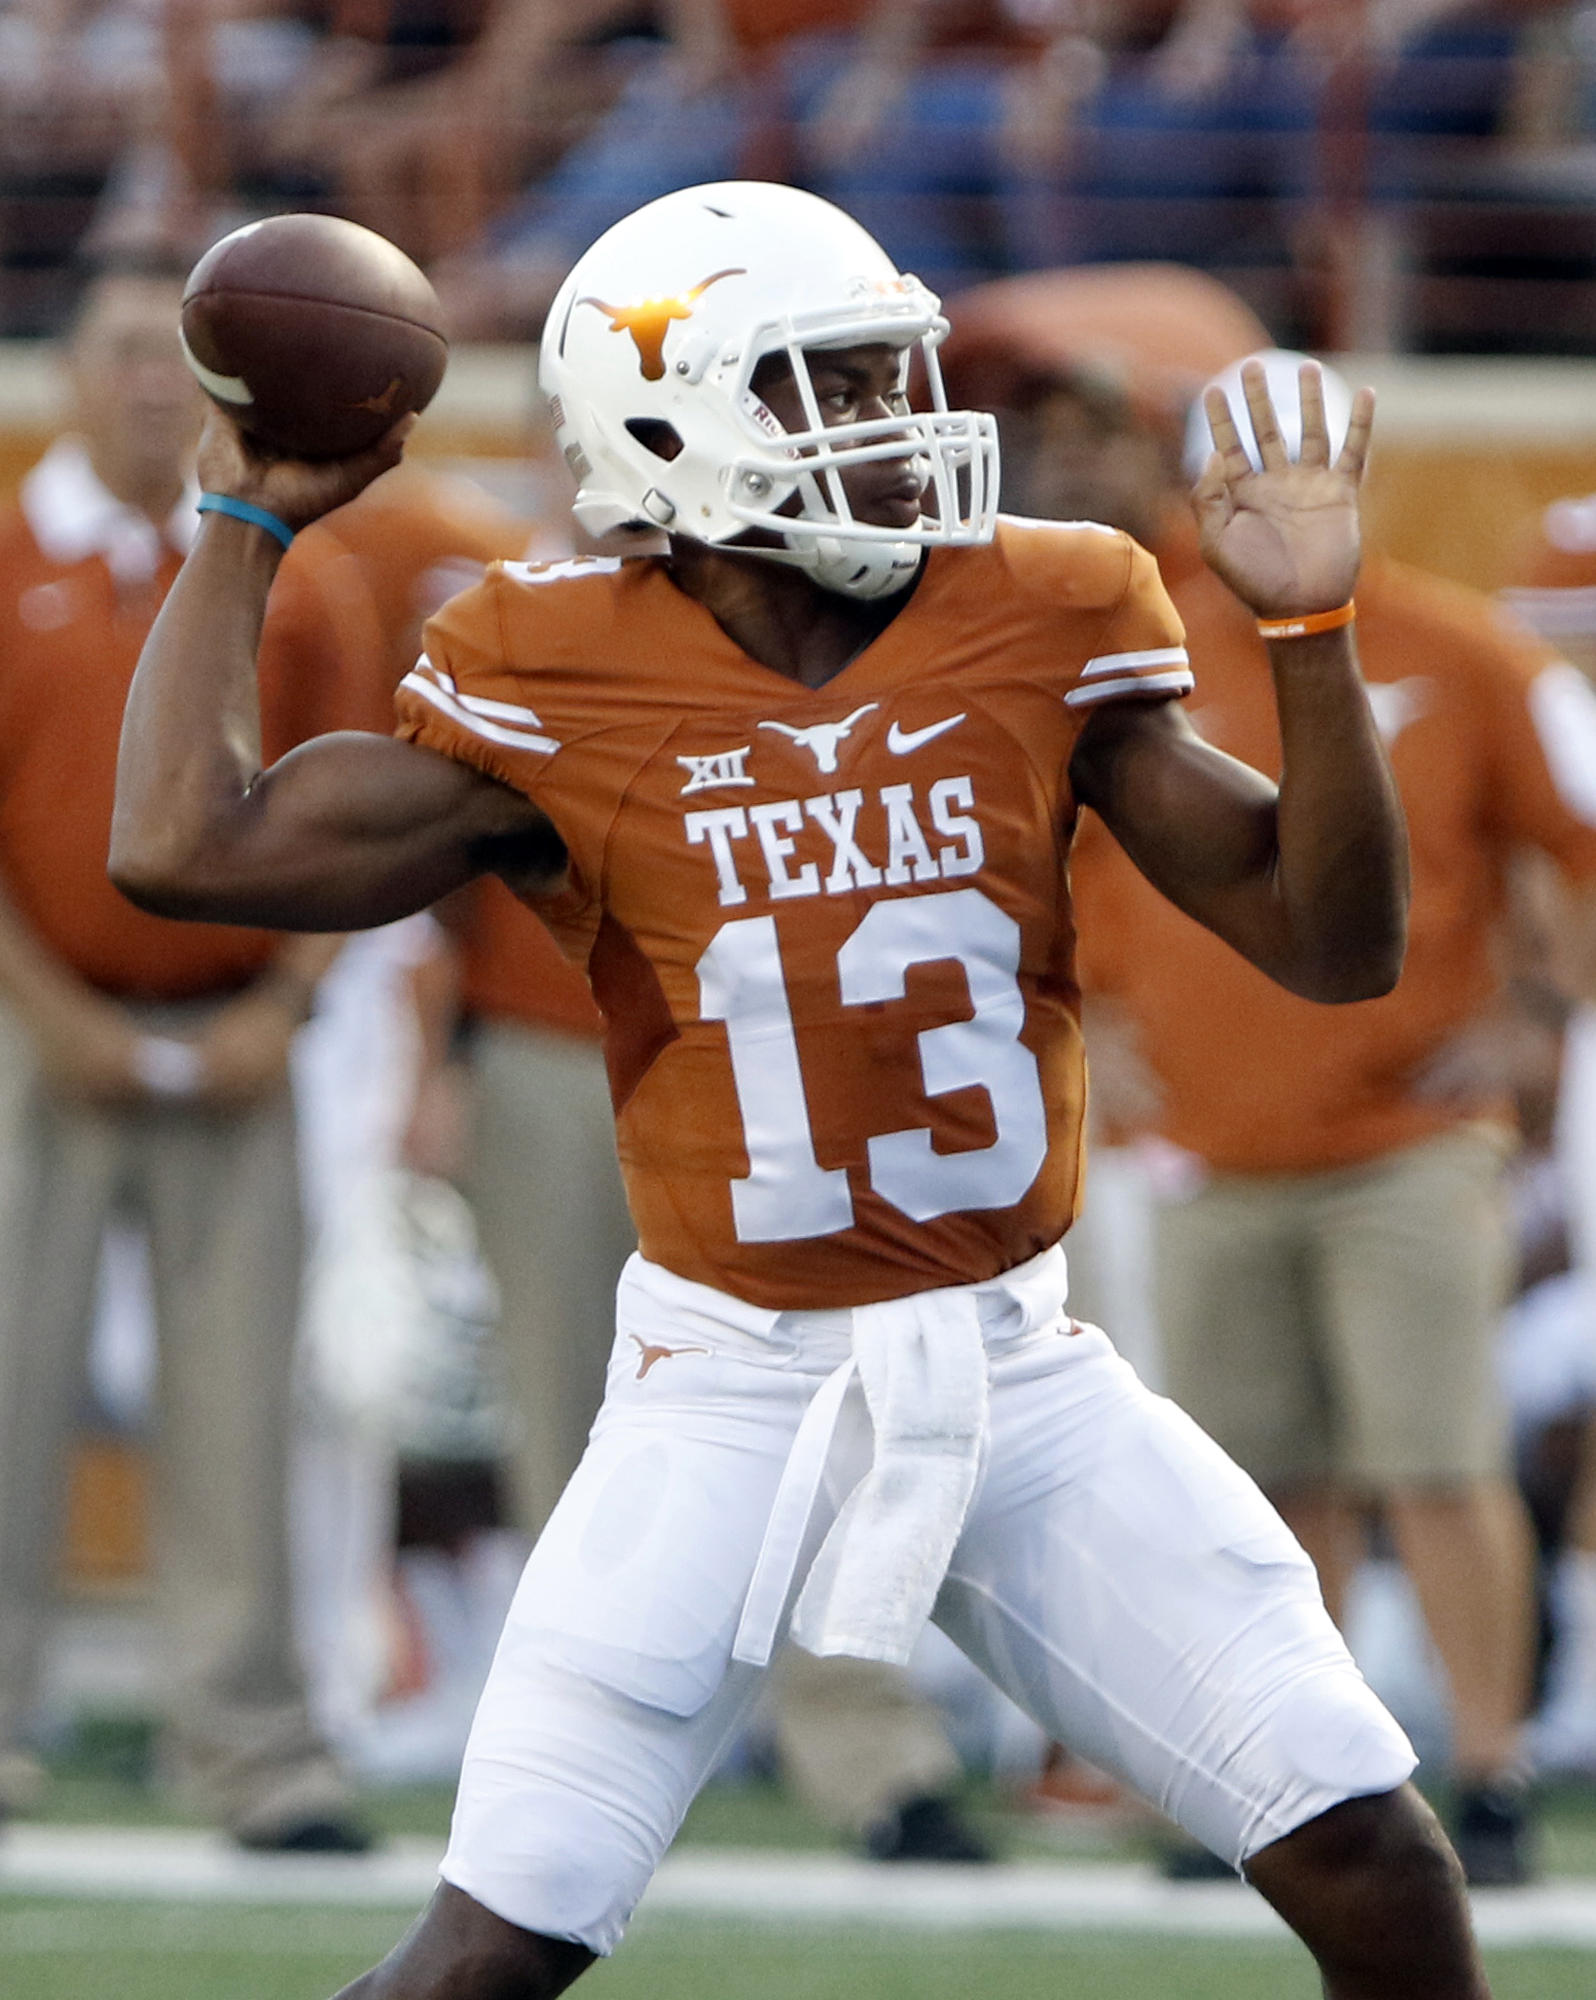 FILE - In this Sept. 19, 2015, file photo, Texas quarterback Jerrod Heard passes during the first half of an NCAA college football game against California in Austin, Texas. The Longhorns may have found their quarterback of the future in the redshirt fresh